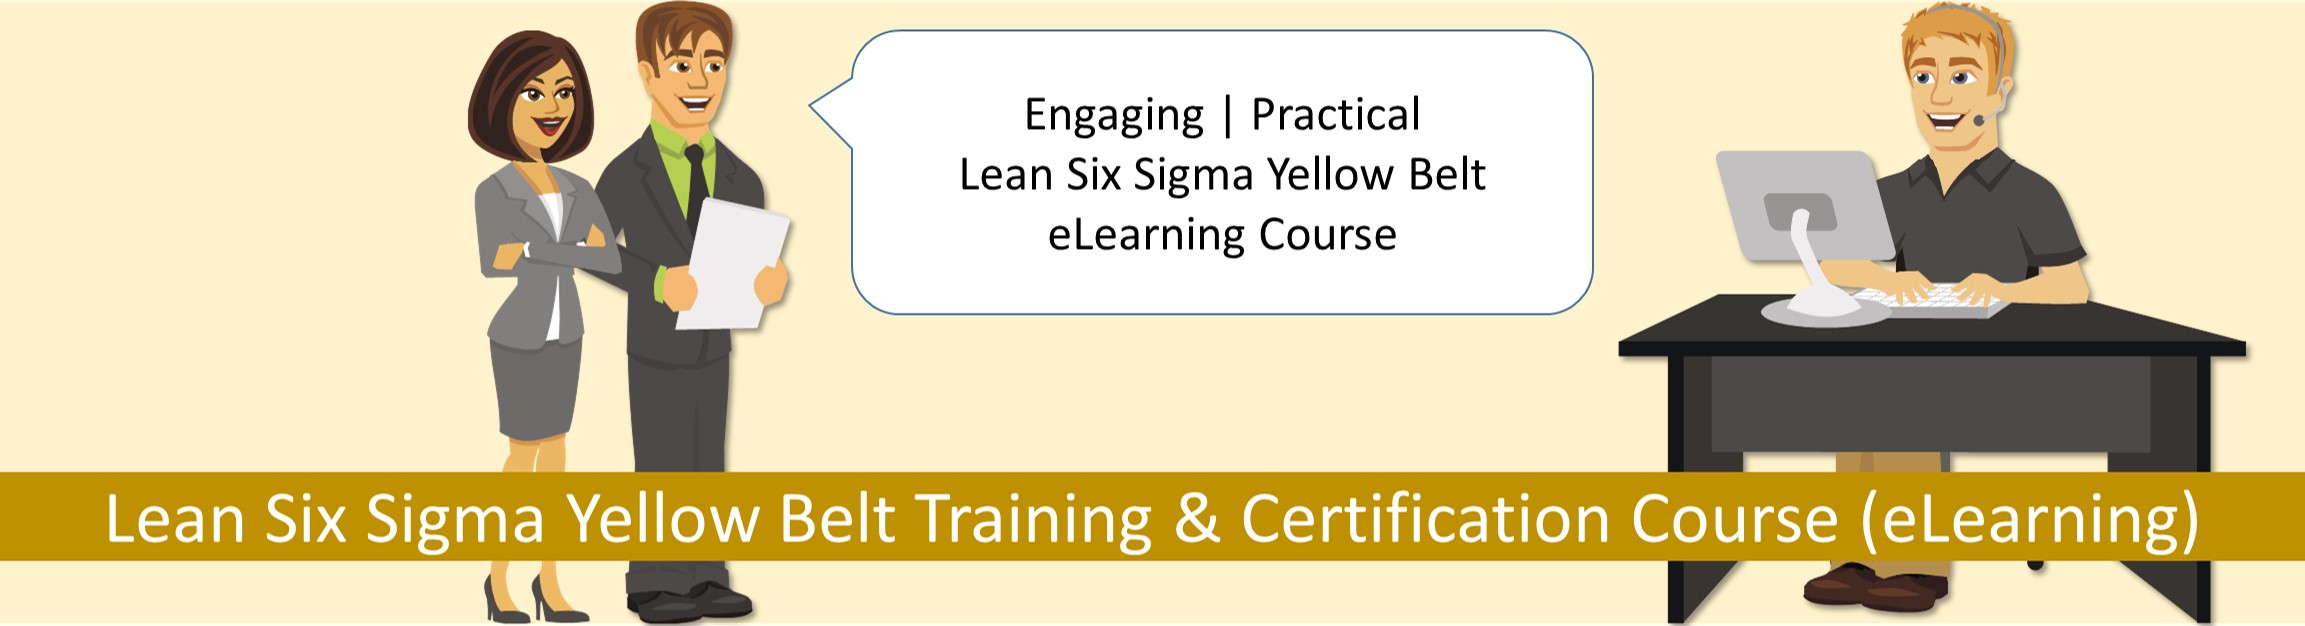 lean six sigma yellow belt training and certification course